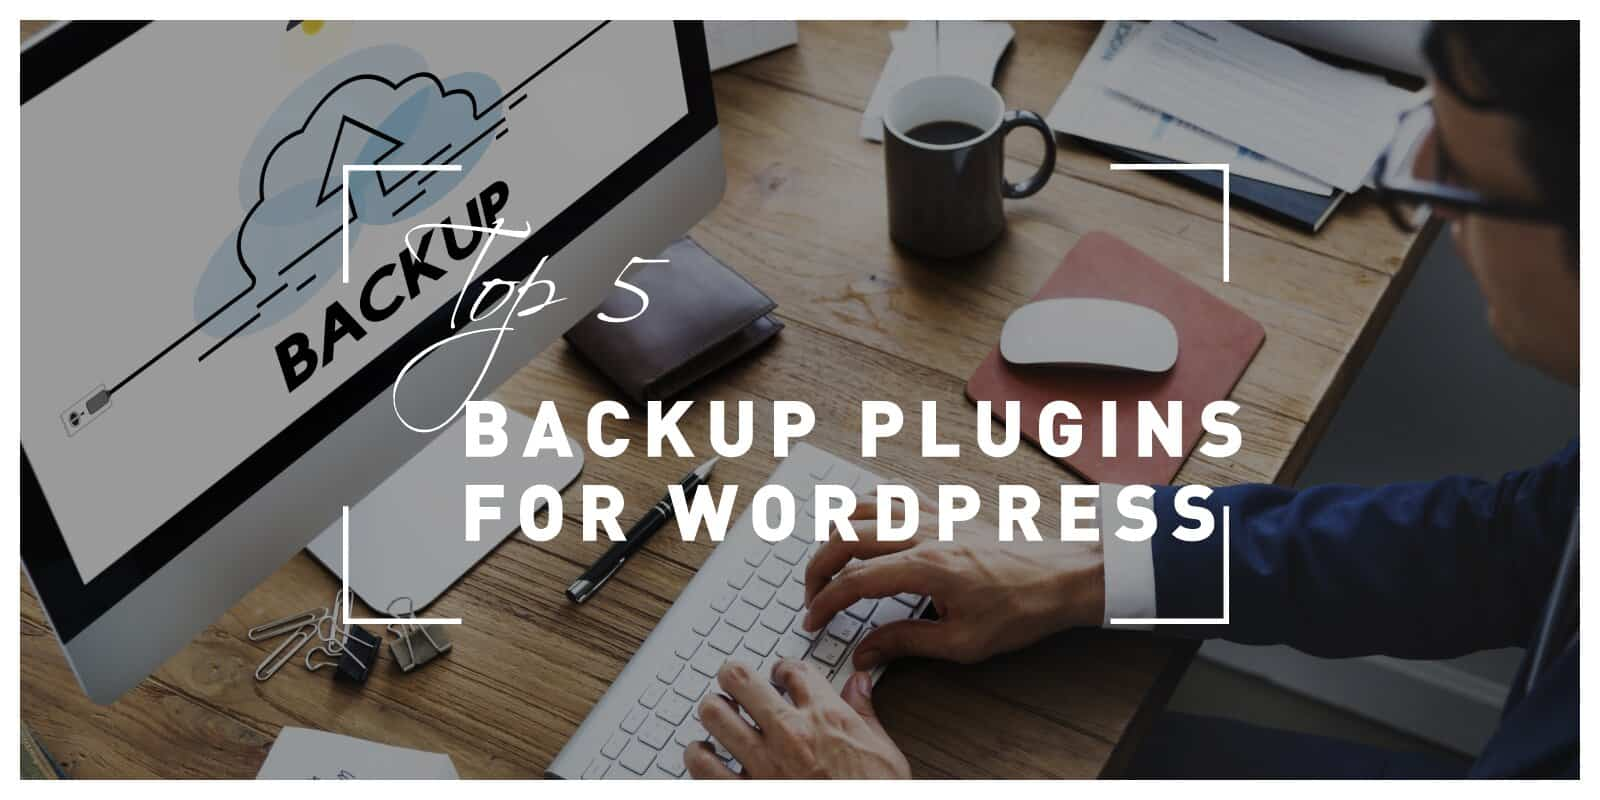 Top 5 Backup Plugins for WordPress That Will Get You Out of Any Sticky Situation